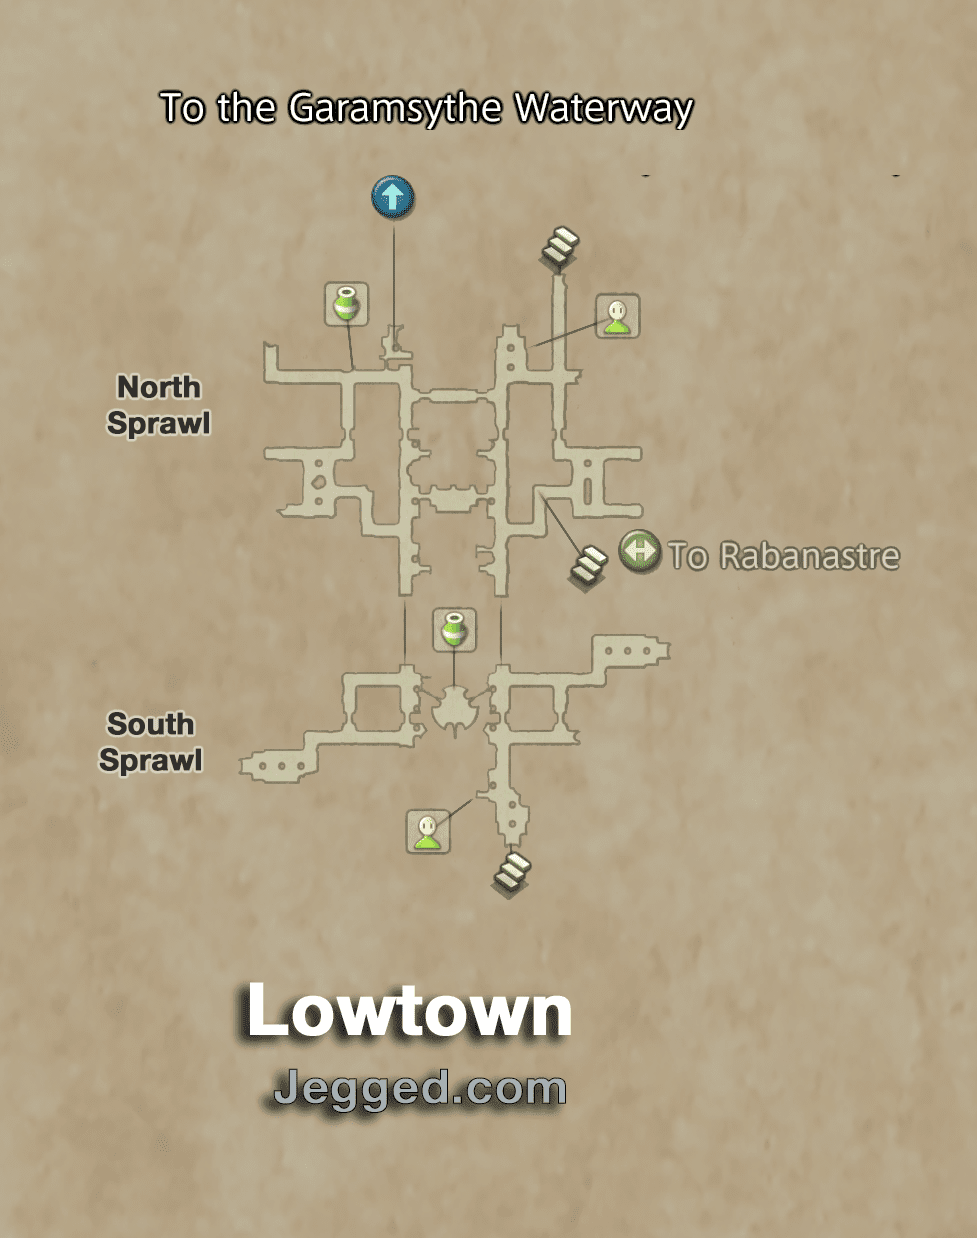 Map of Lowtown in Rabanastre